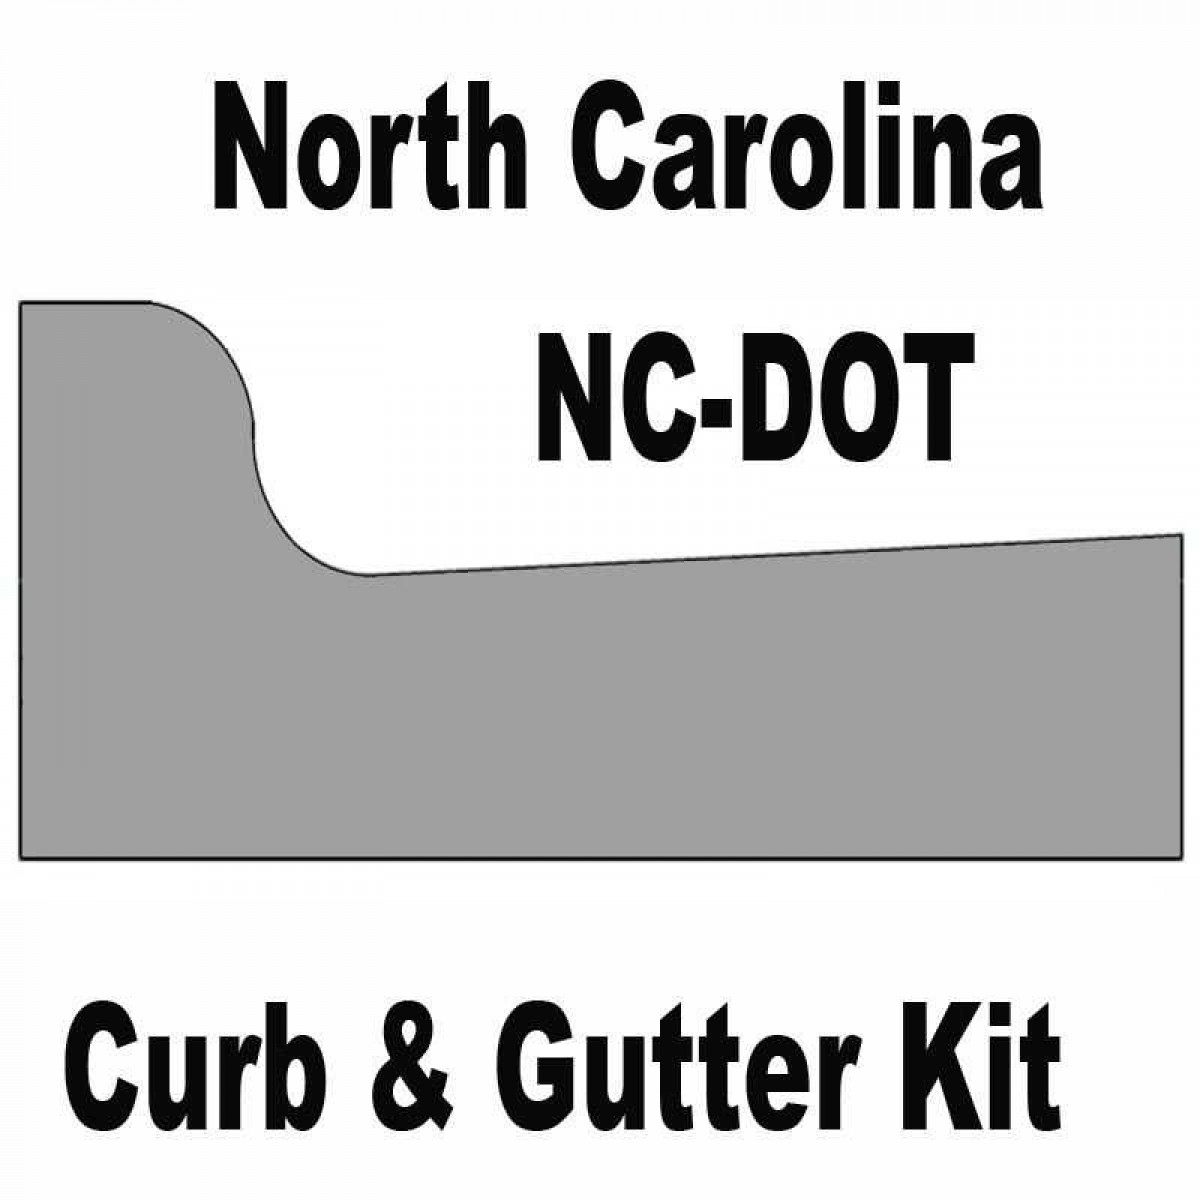 Ncdot North Carolina Curb And Gutter Concrete Form Kit 10ft